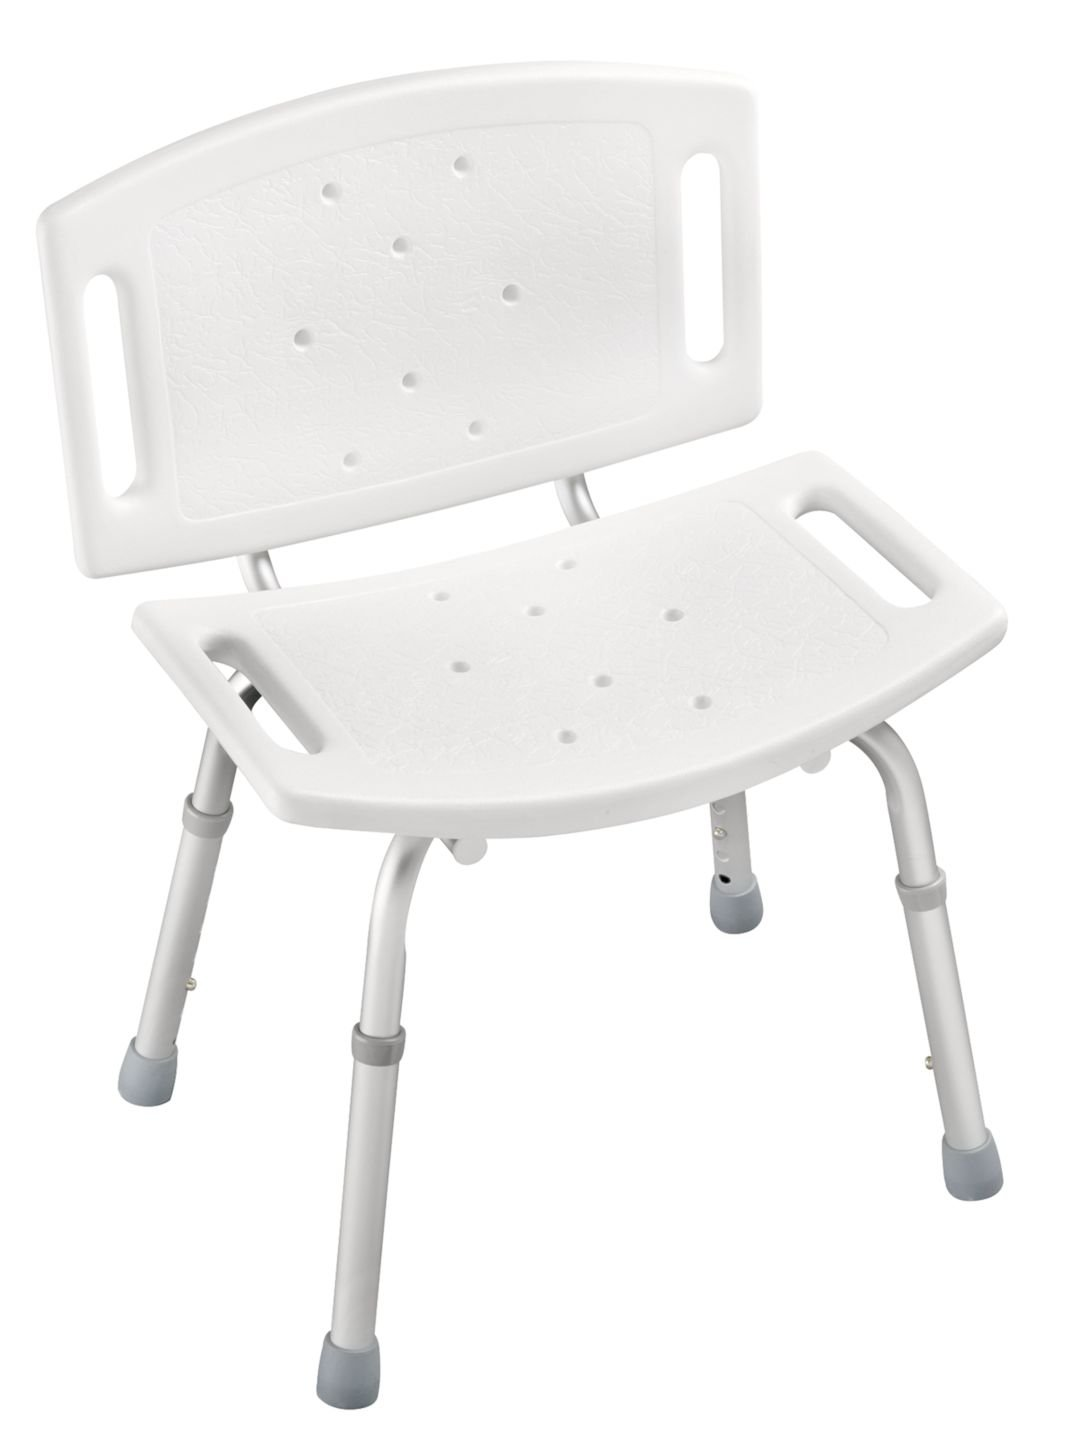 Delta DF599 Adjustable Height Bathtub and Shower Chair